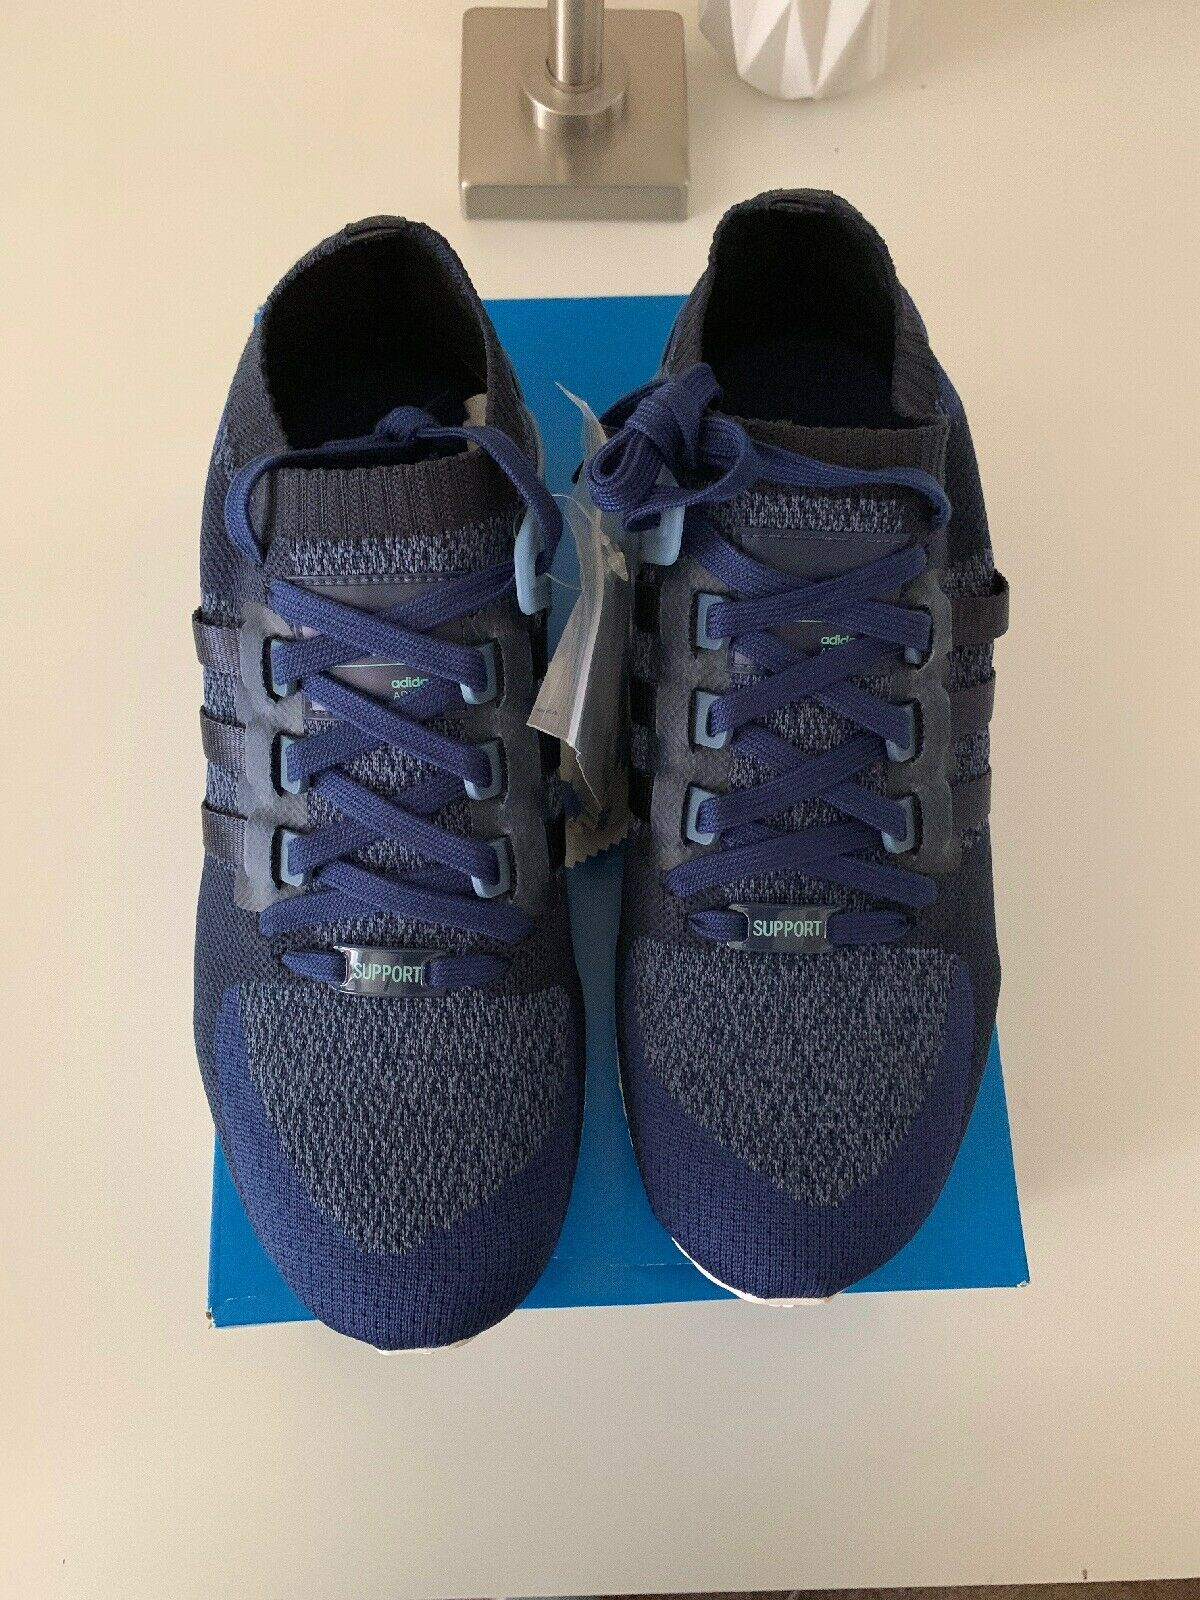 pretty nice 9e429 042cb Adidas Originals EQT Support Ultra Boost Primeknit 10.5 Mens CQ1895 Navy  Indigo